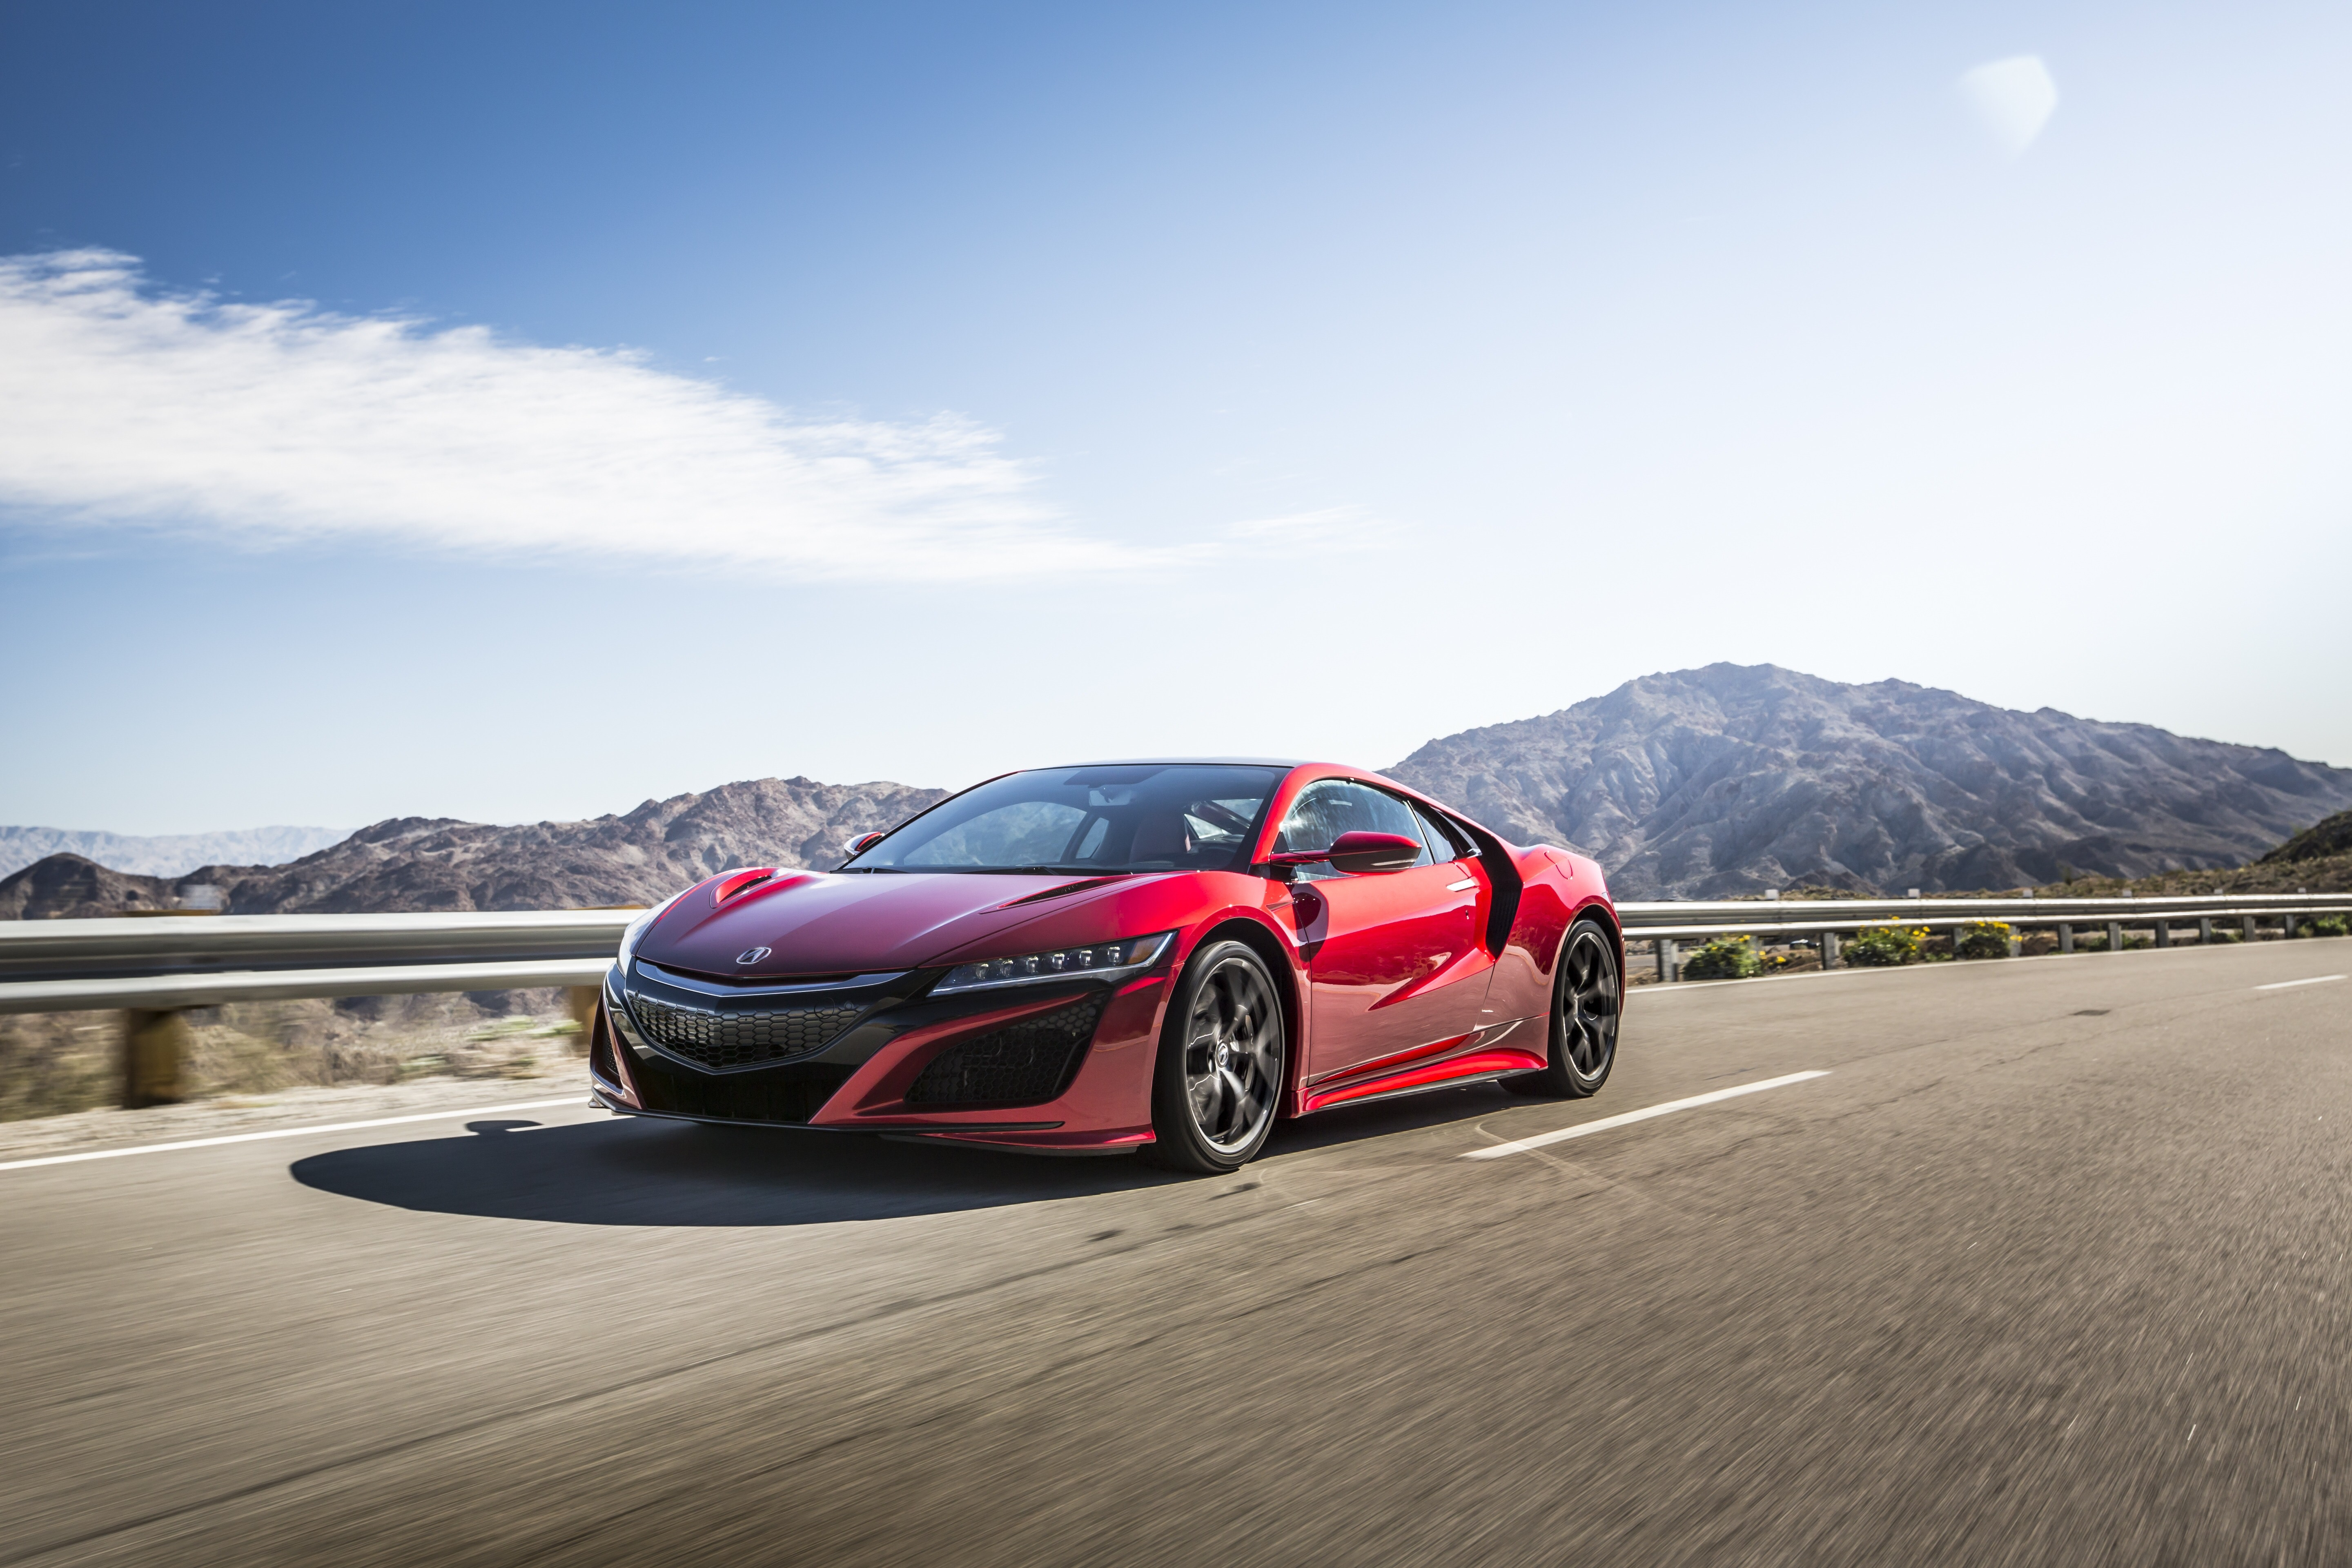 Acura Just Recently Released Itu0027s U201cmainstream Supercaru201d In The Legendary NSX.  This Iteration Followed Suit With Some Of Todayu0027s Supercars, Combining The  ...